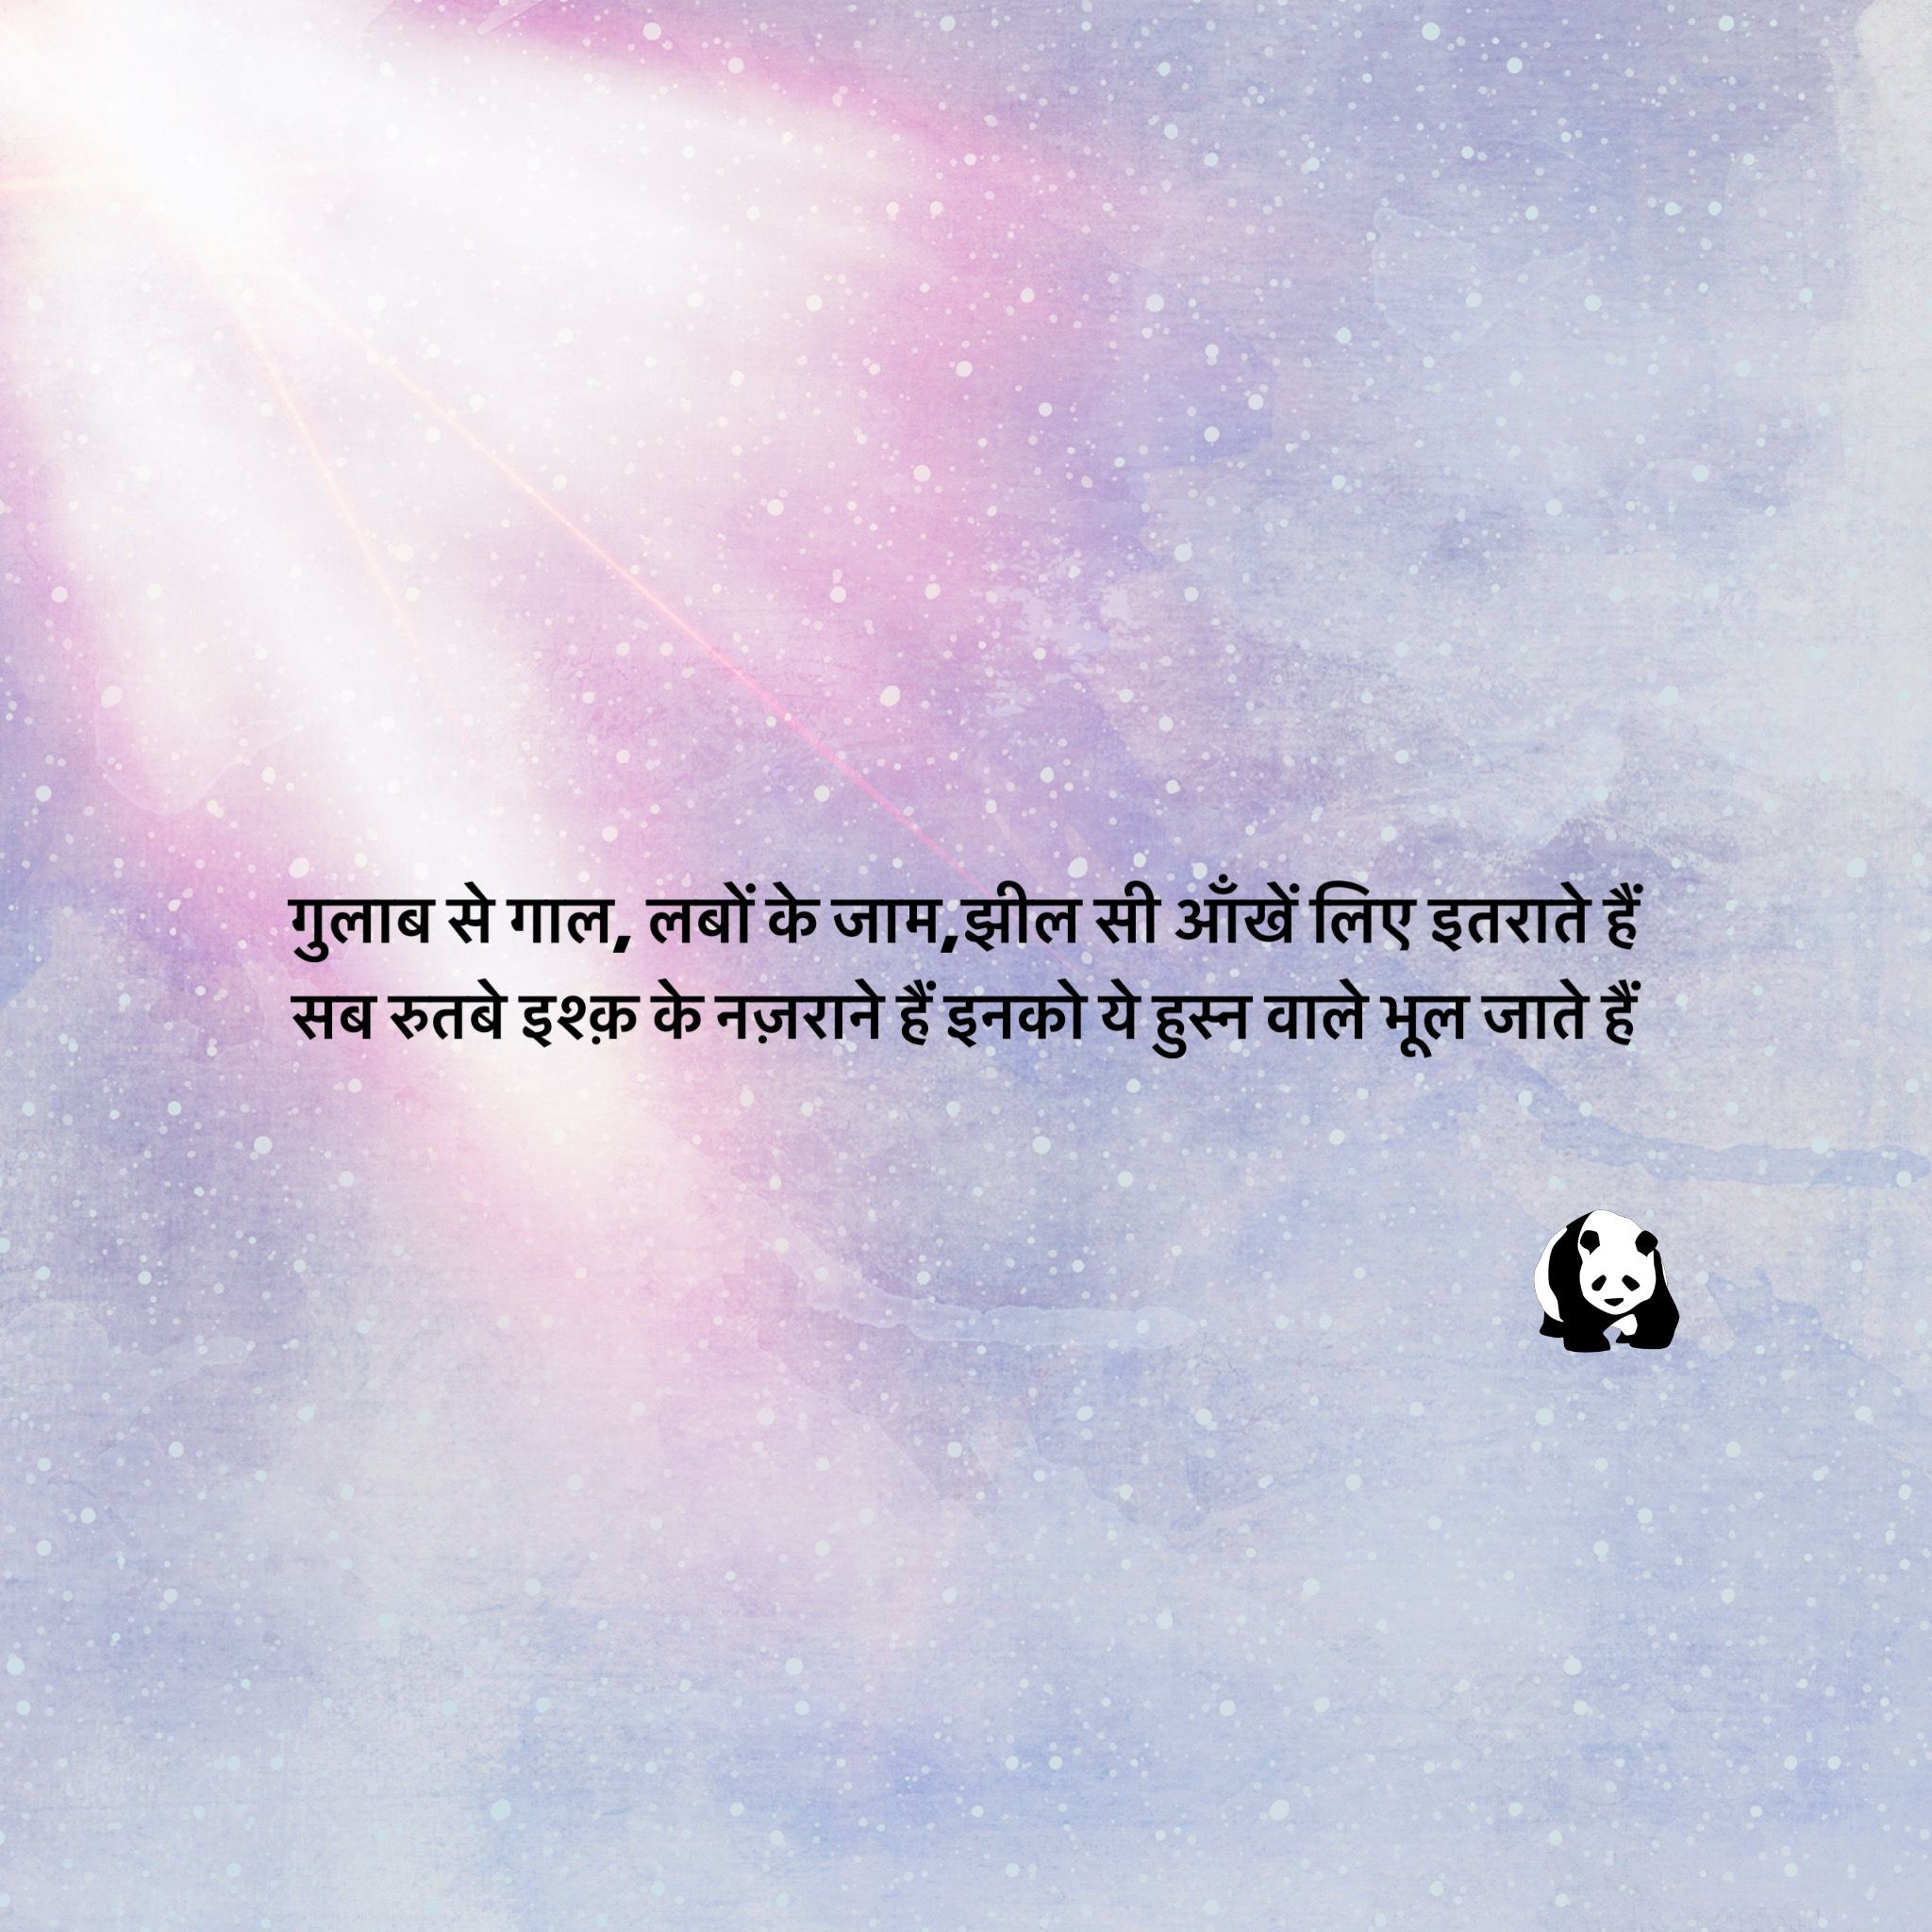 Infinity Quotes Pinraj On Guftguik Lamhe Ki Ik Pal Se  Pinterest